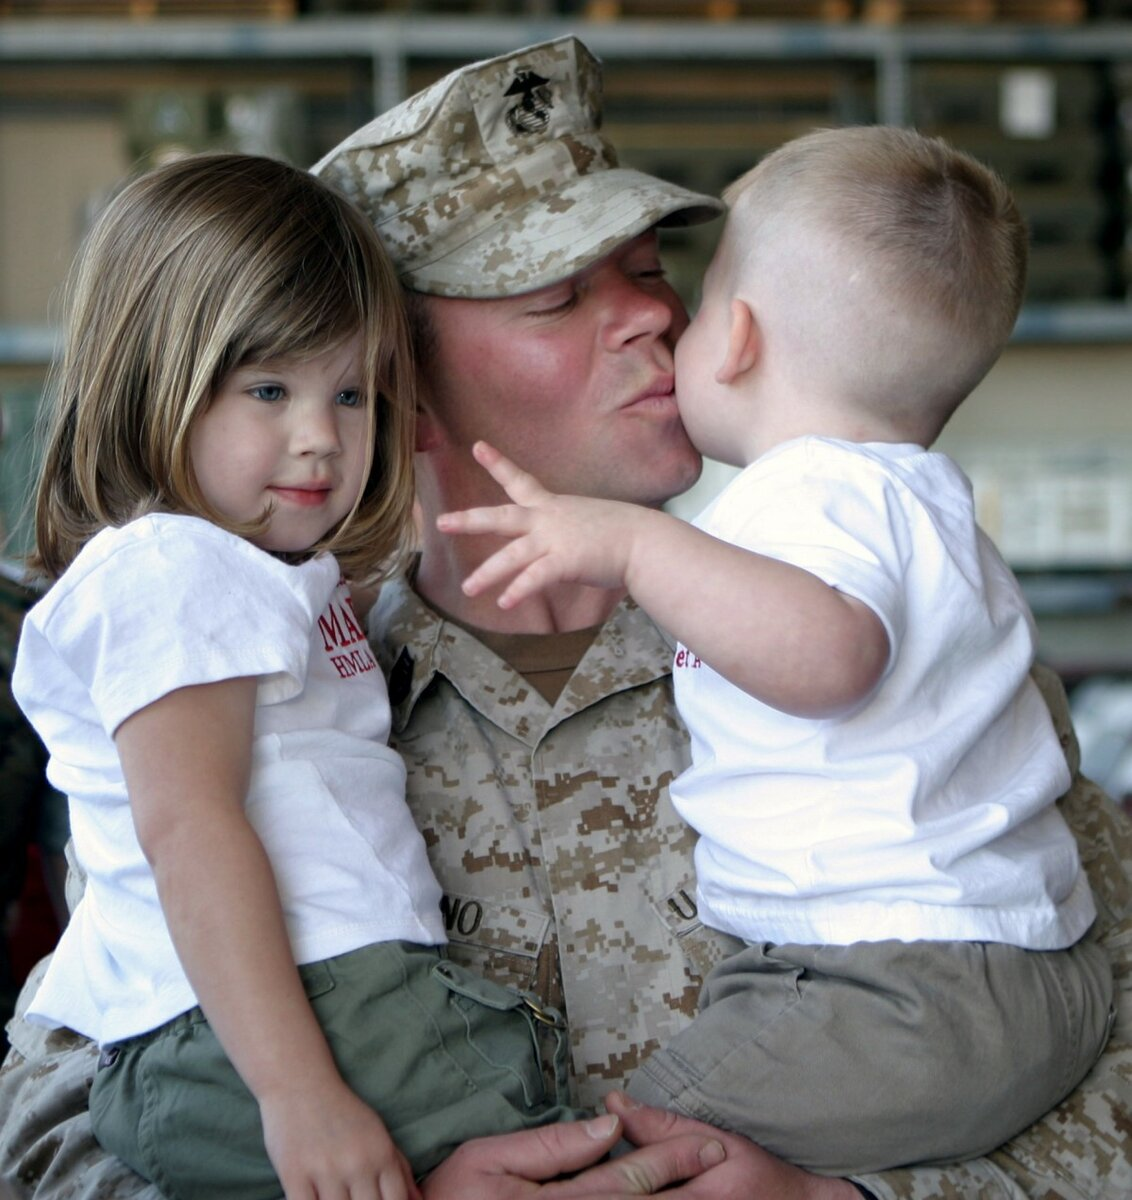 https://c.pxhere.com/photos/33/42/soldier_children_family_kids_marine_love_kiss_male-706347.jpg!d